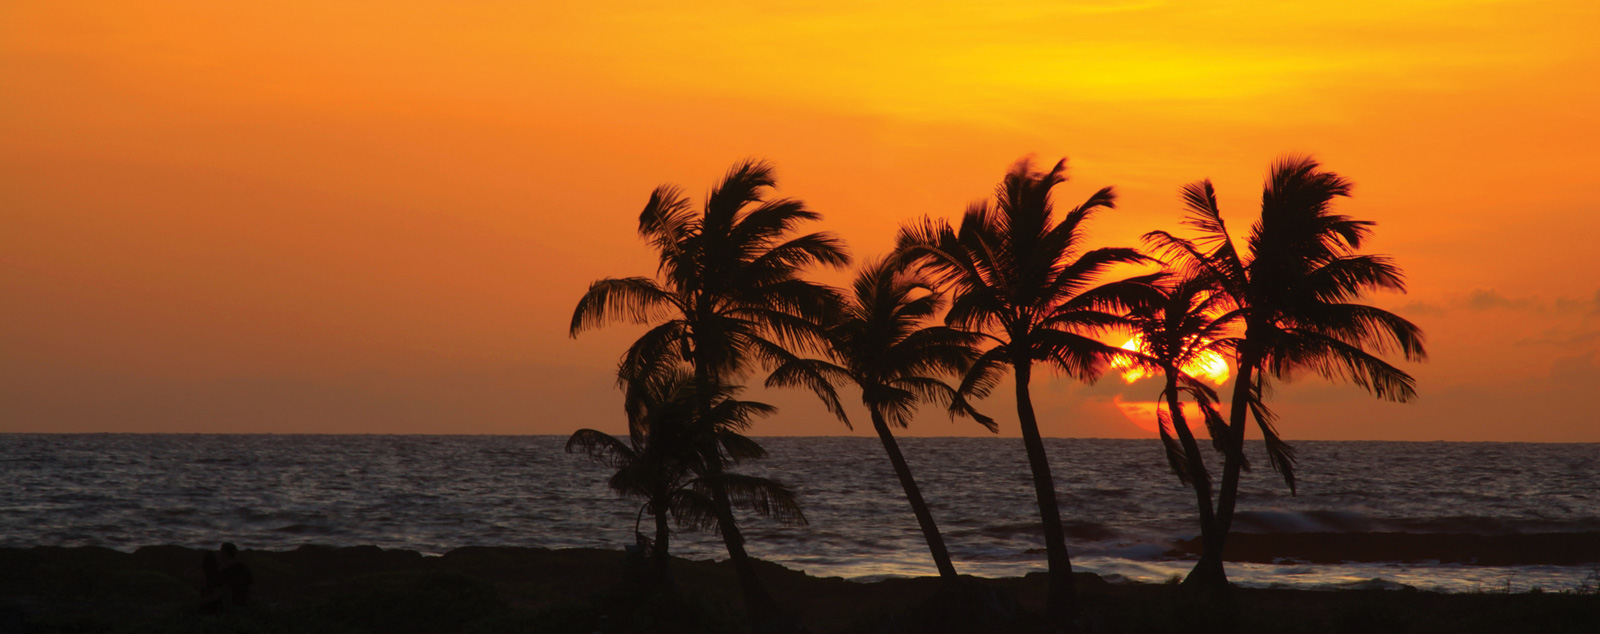 Palm trees sillouhetted against an orange sunset over the ocean.